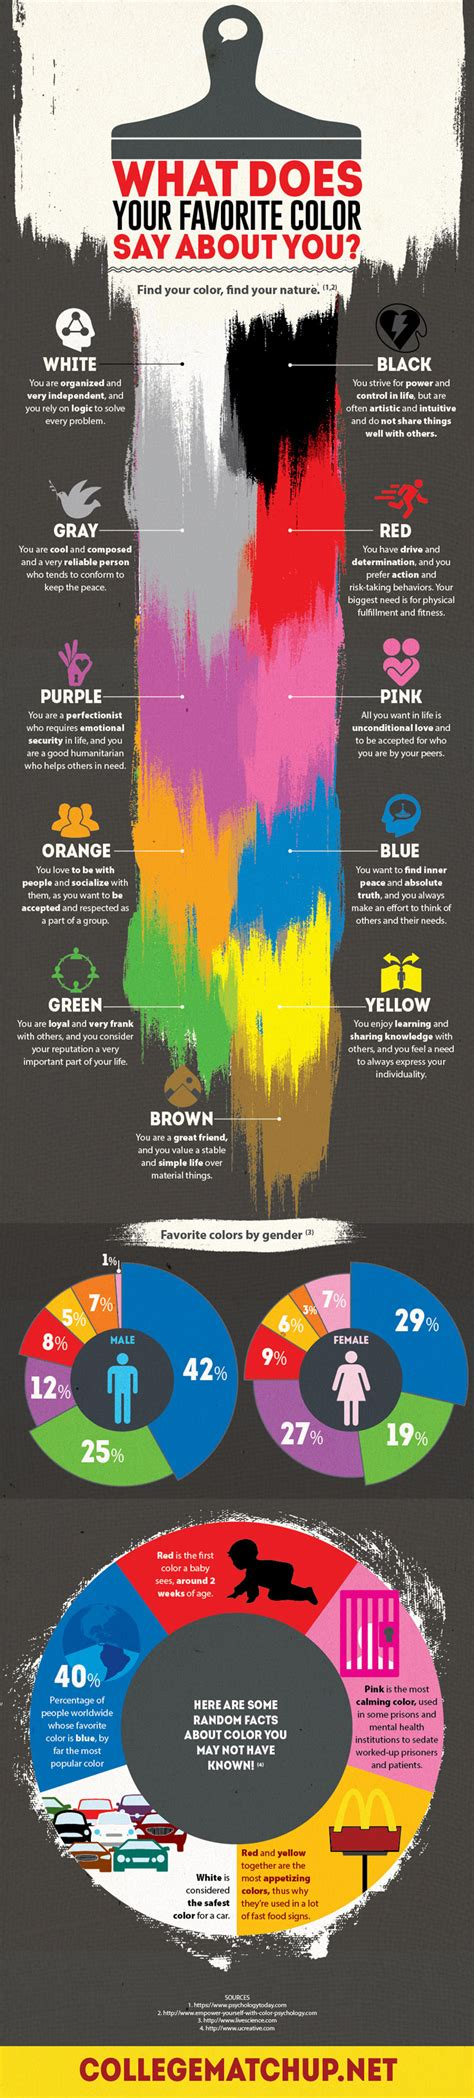 favorite color what does your favorite color say about you infographic